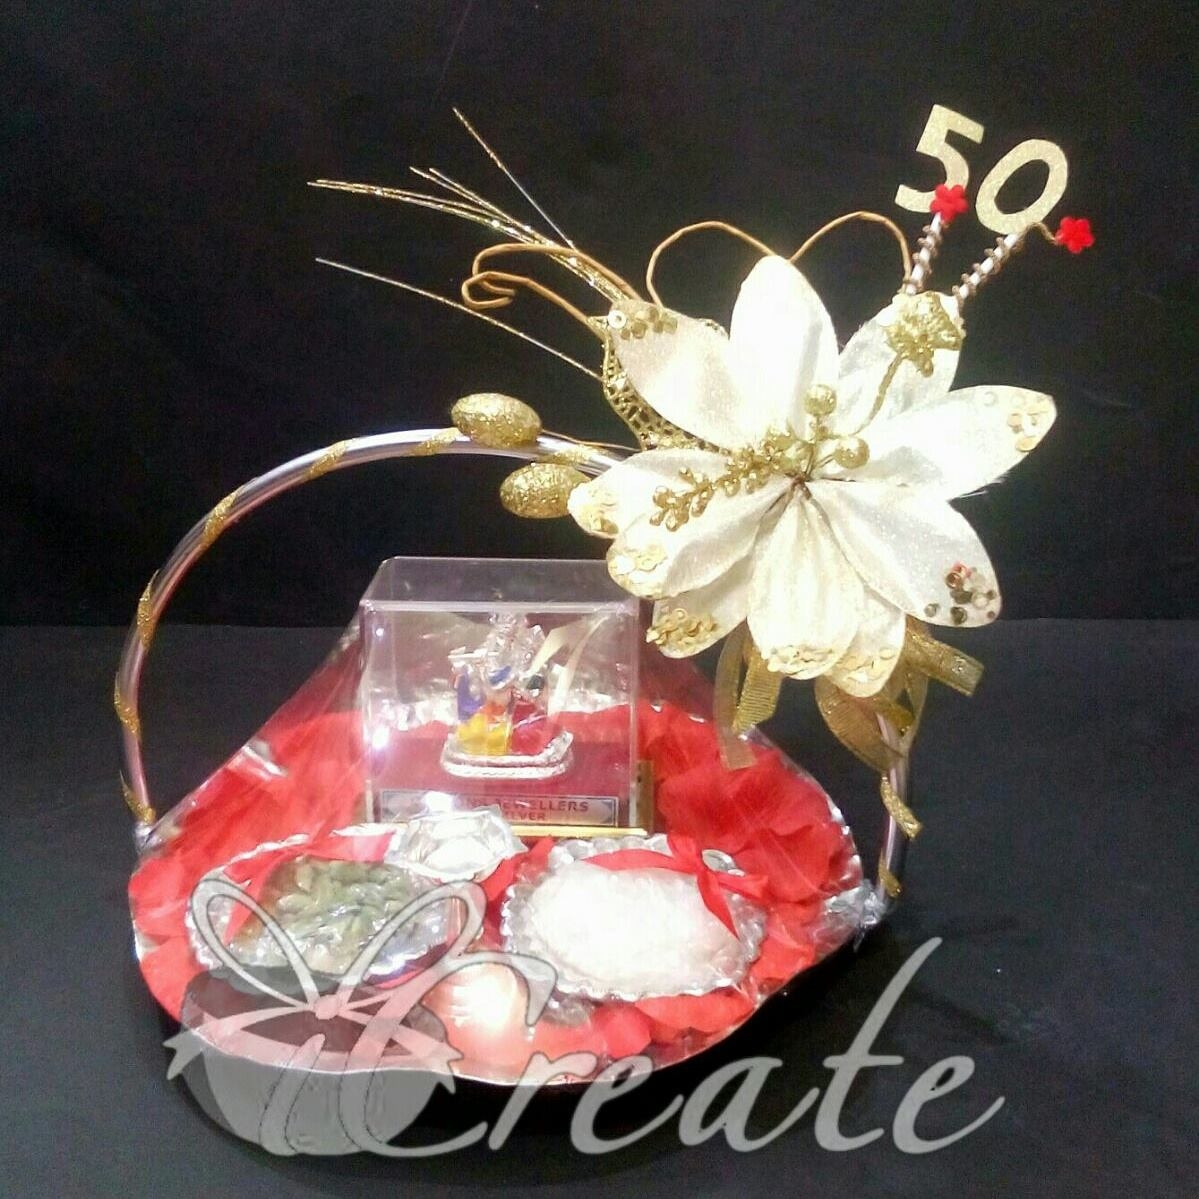 iCreate-The Art of Exquisite Gifting